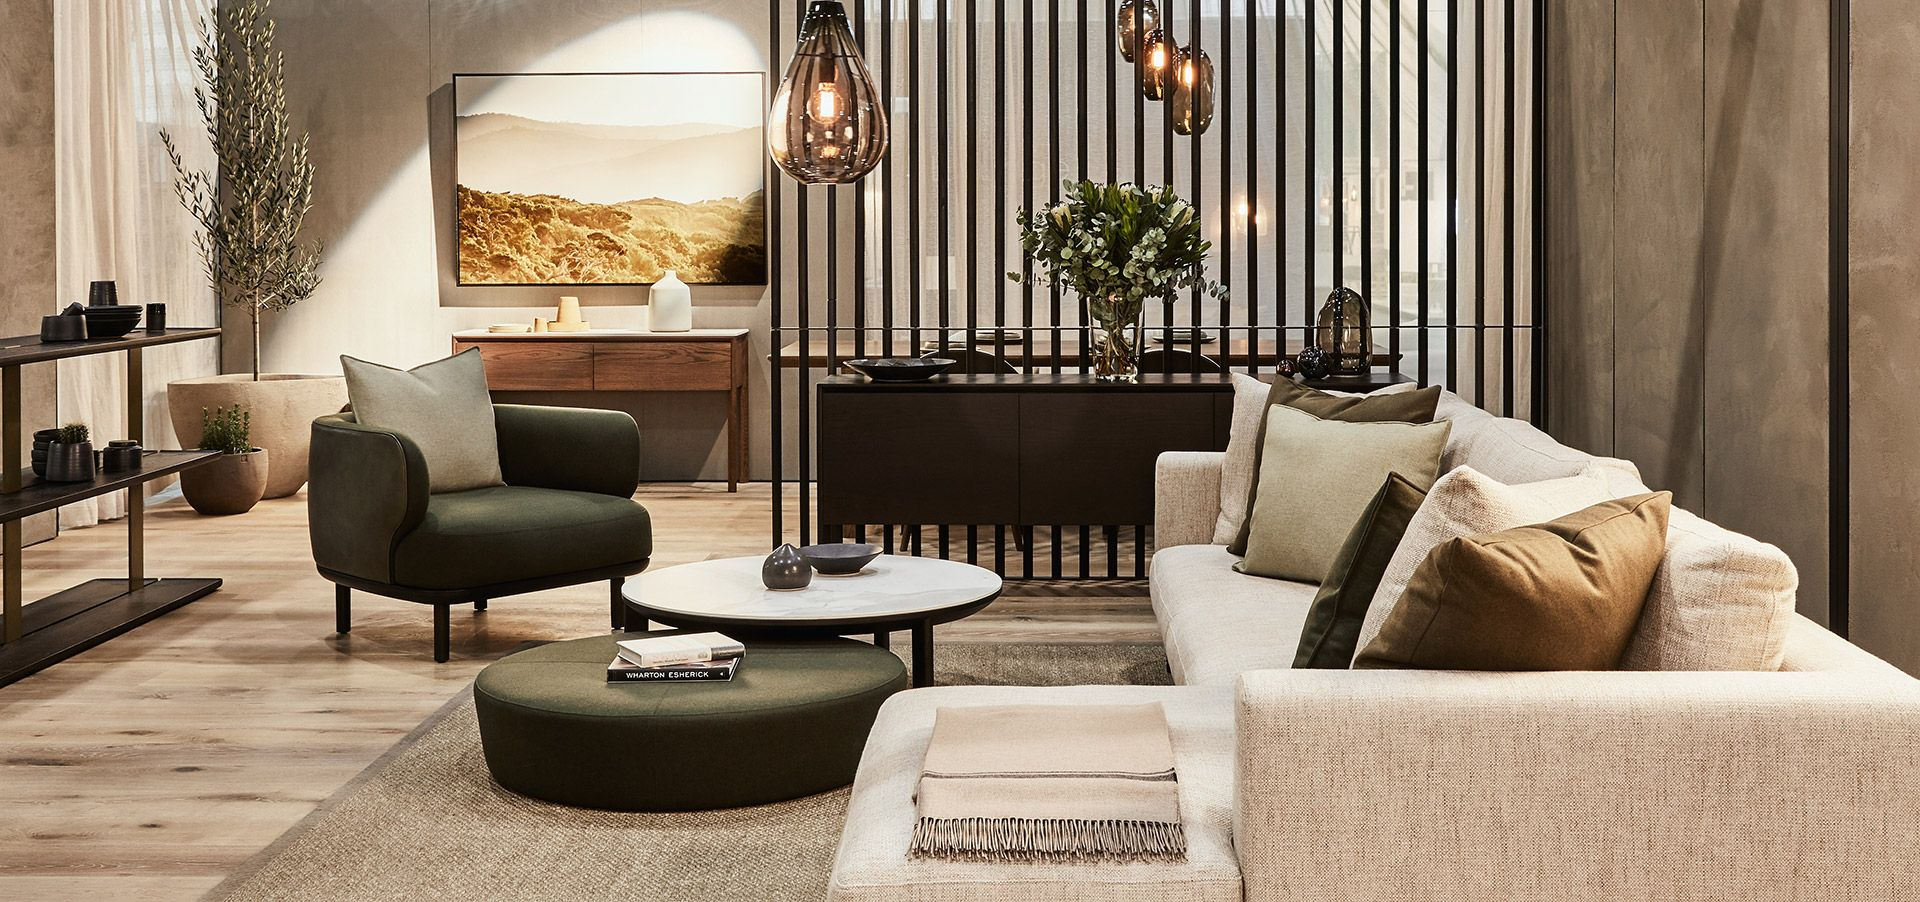 Beau TRADITIONALLY, Australian Designer Furniture Brands Have Been Heavily  Influenced By European Trends, But The